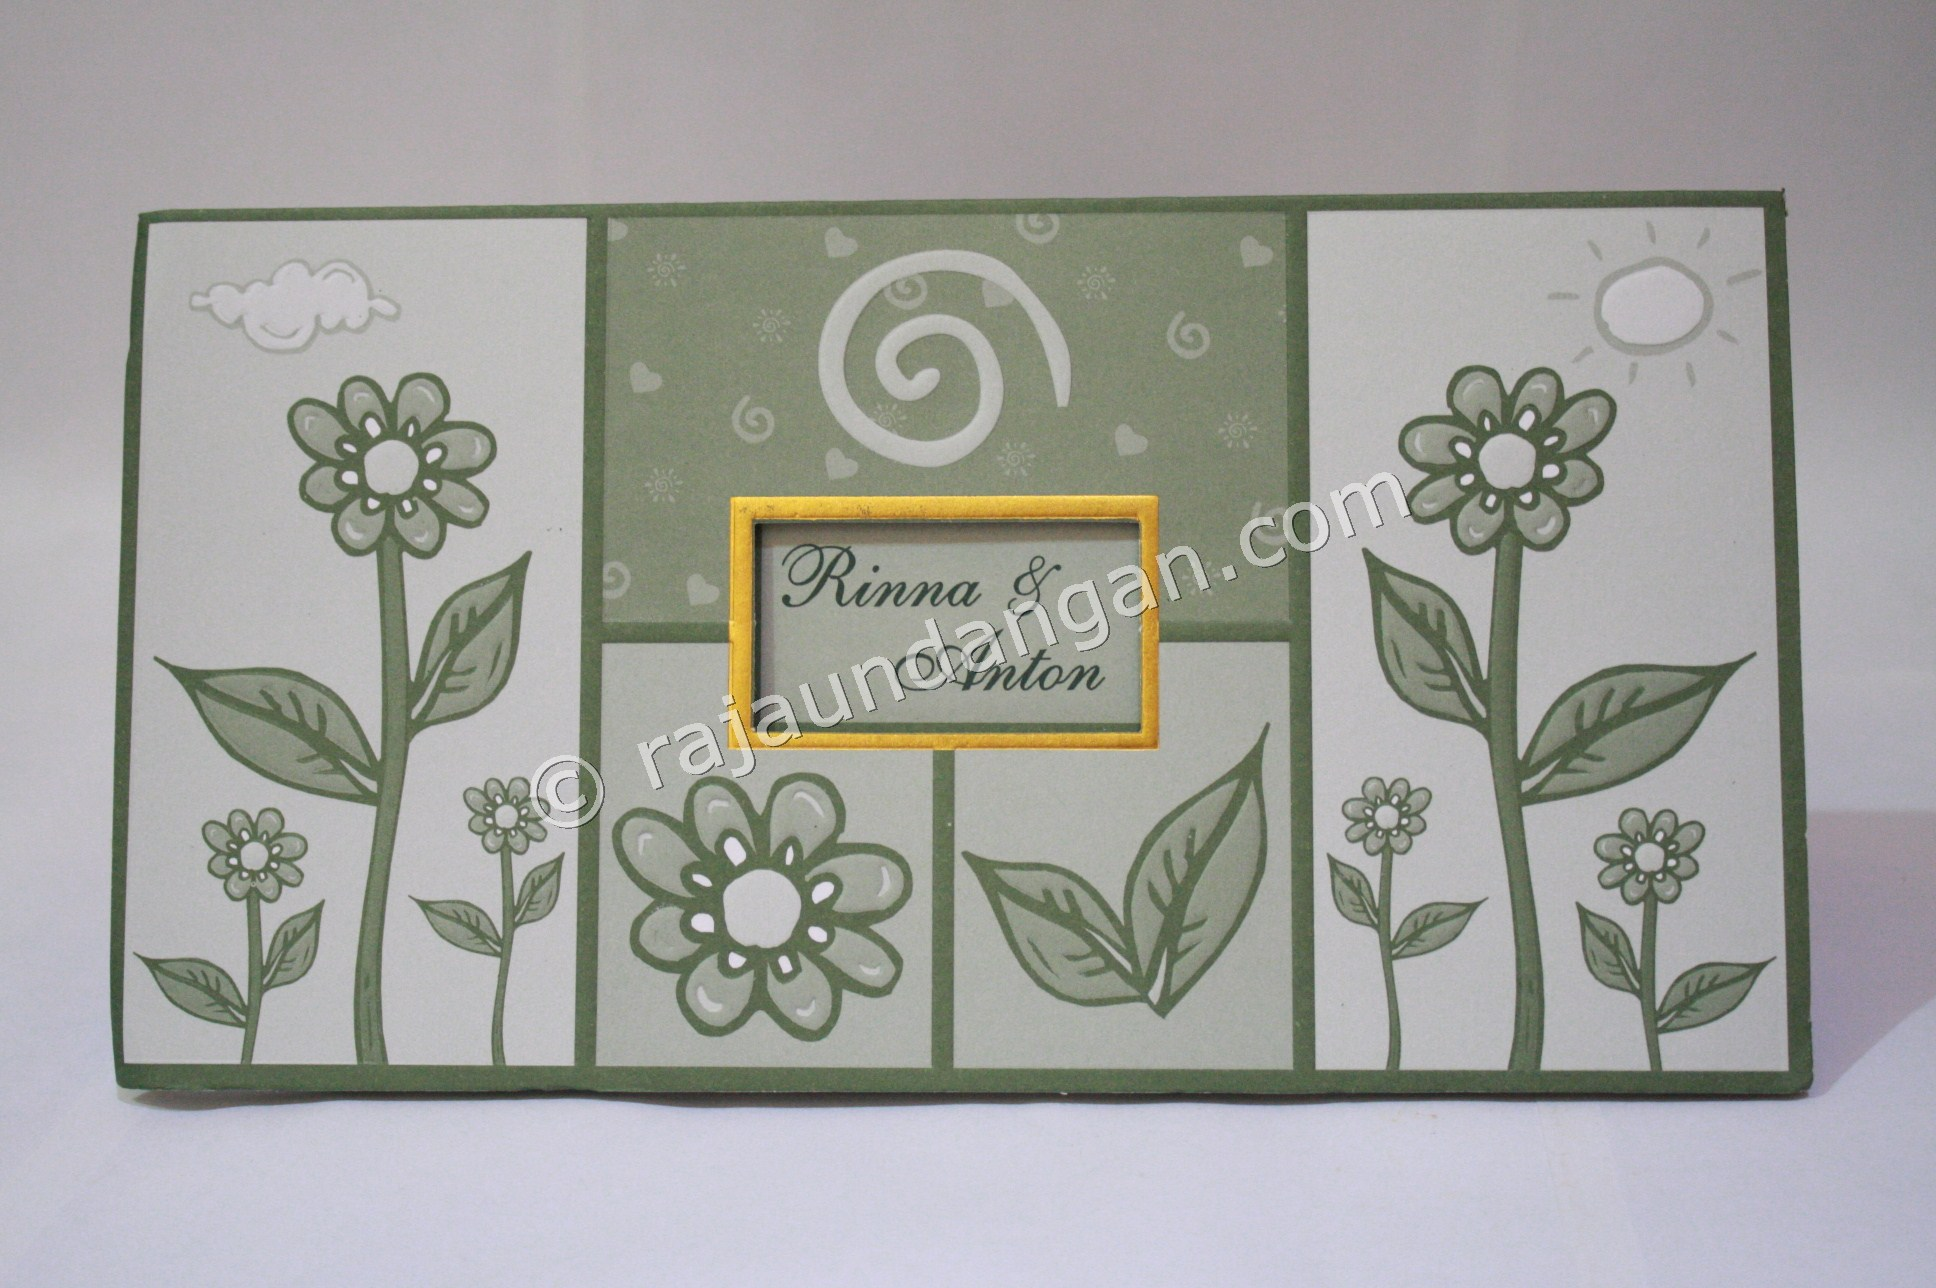 Cetak Wedding Invitations Eksklusif di Babakan Jerawat